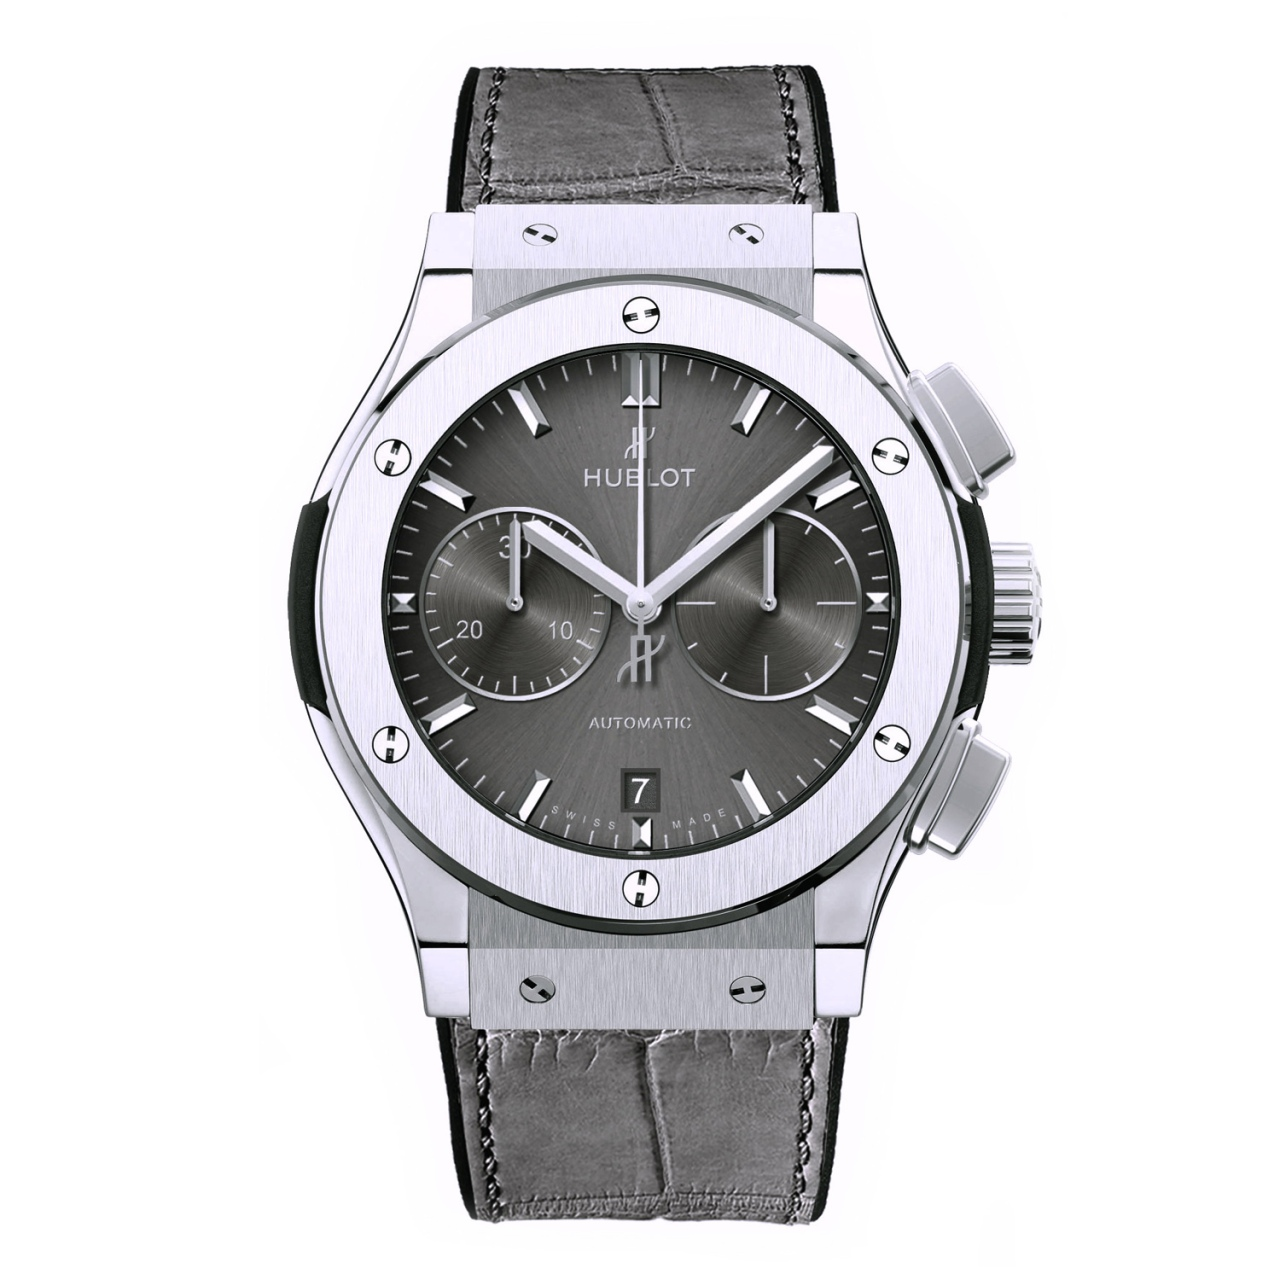 hublot-classic-fusion-chronograph-automatic-mens-watch-521-nx-7071-lr